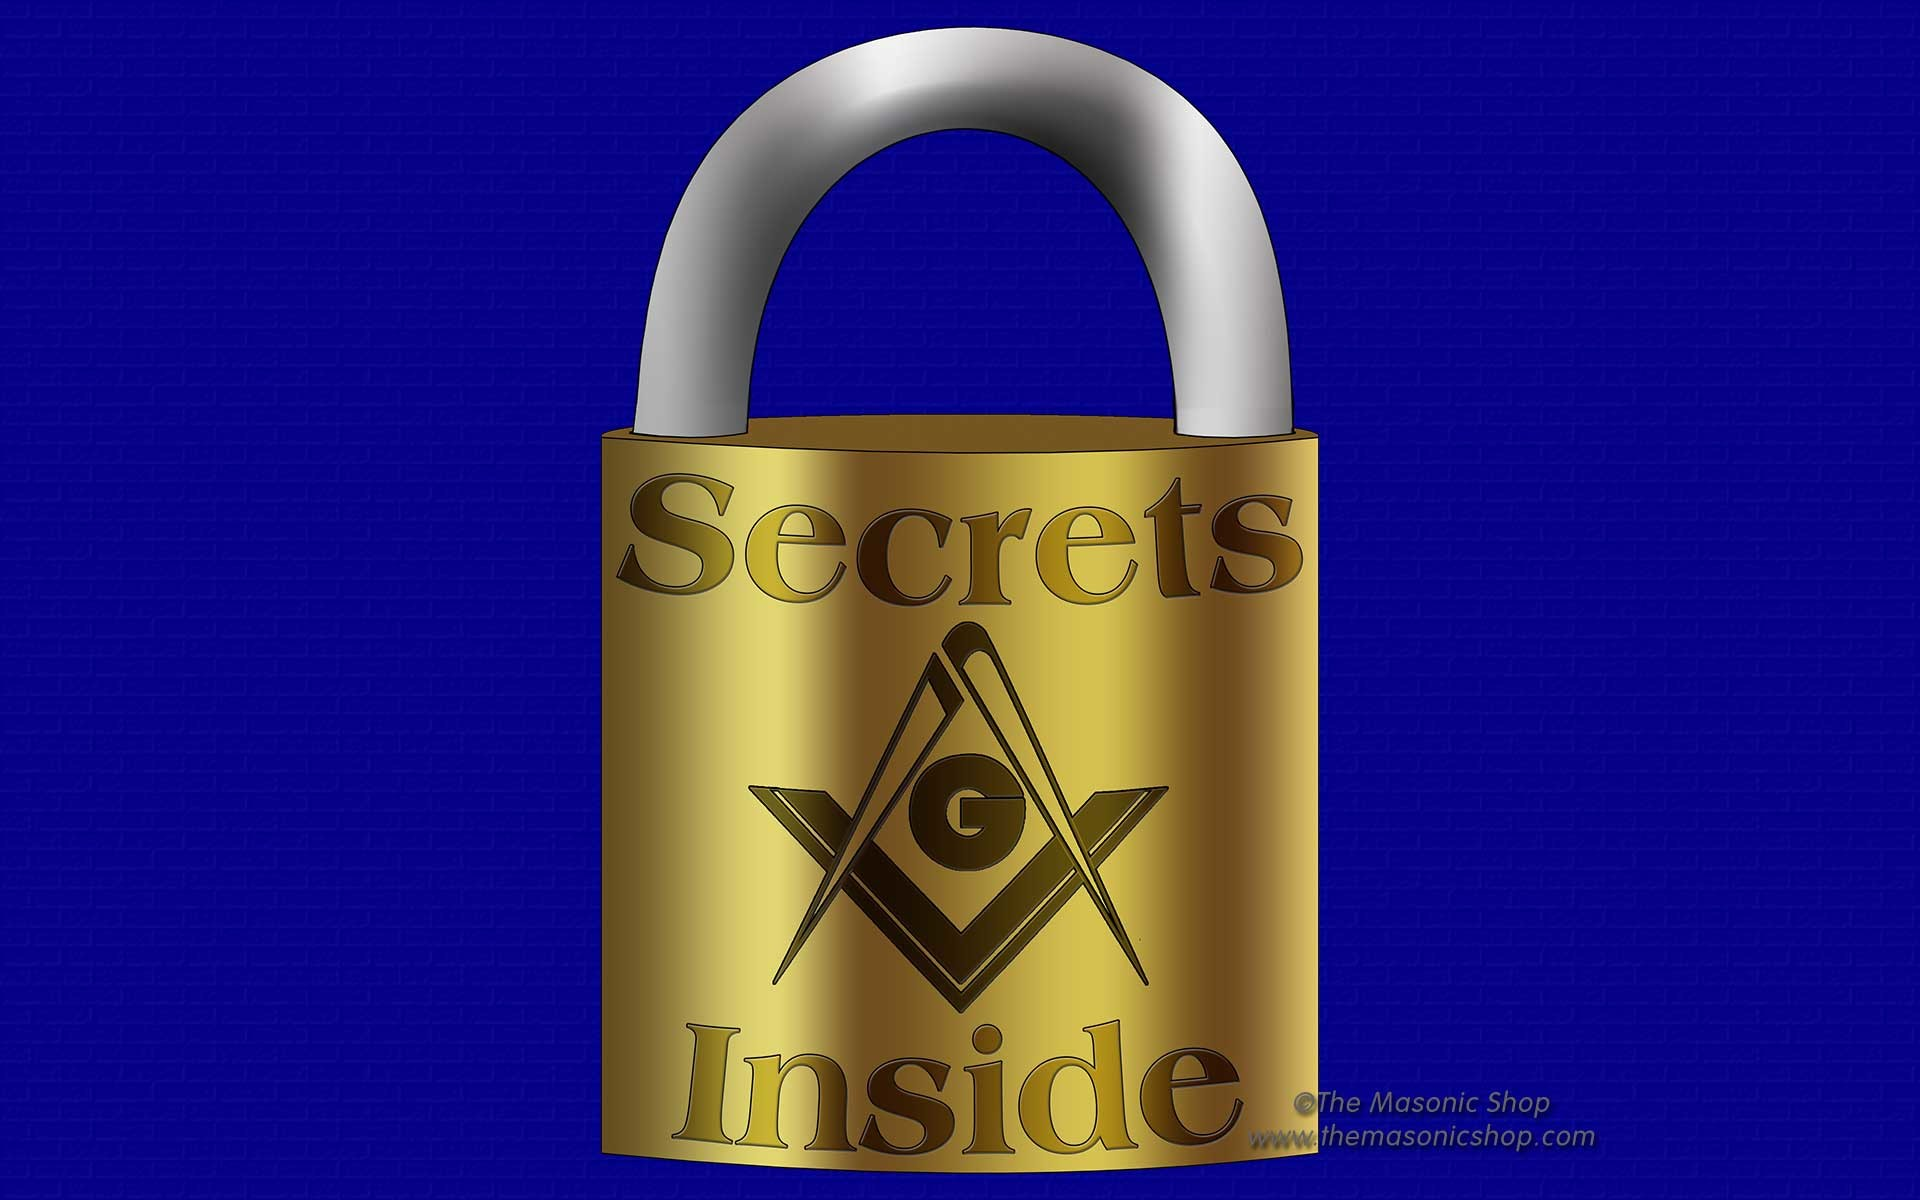 1920x1200 Masonic Logo Wallpaper Masonic secrets